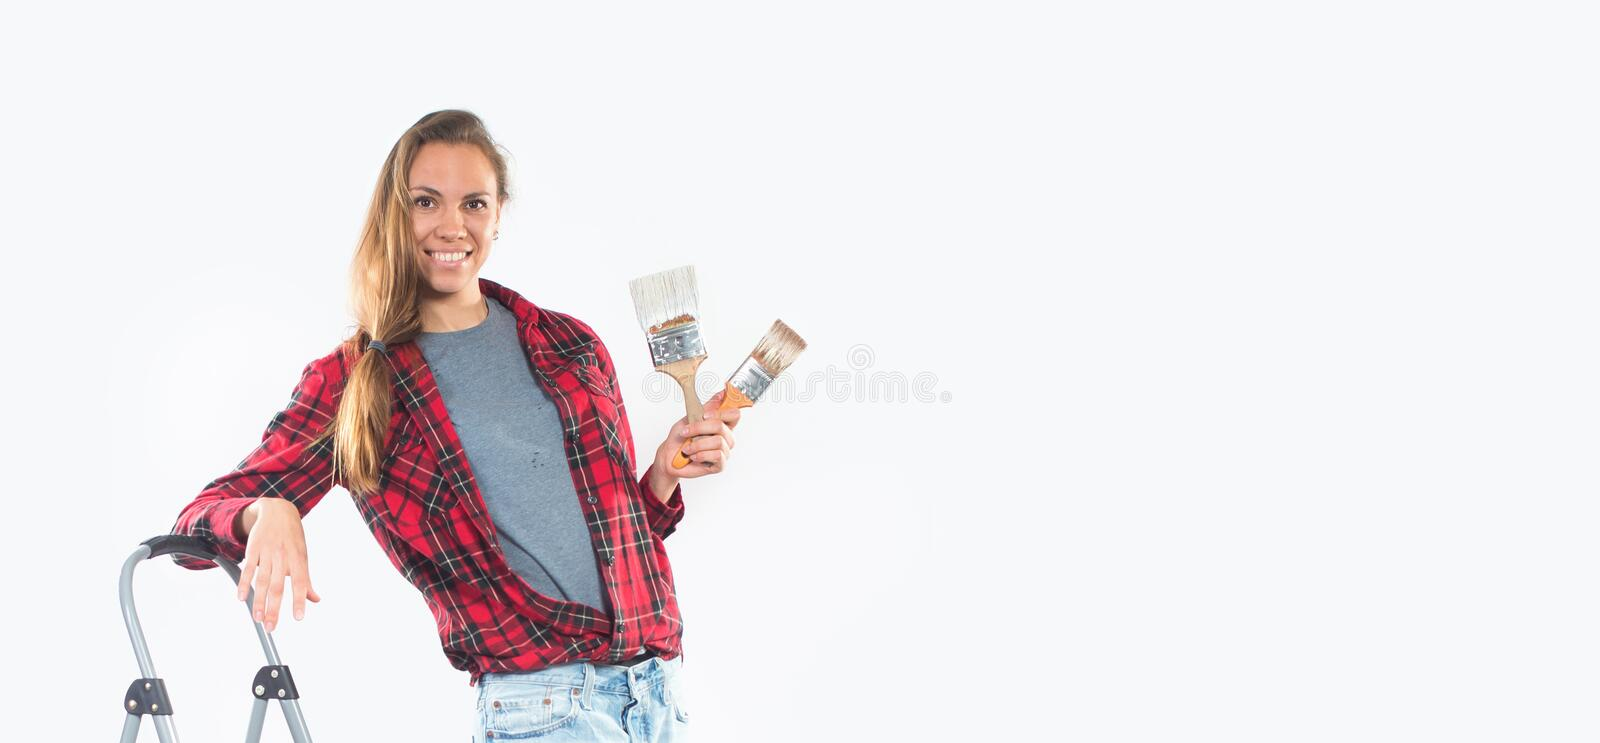 Smiling young woman with paintbrushes near empty wall stock photography